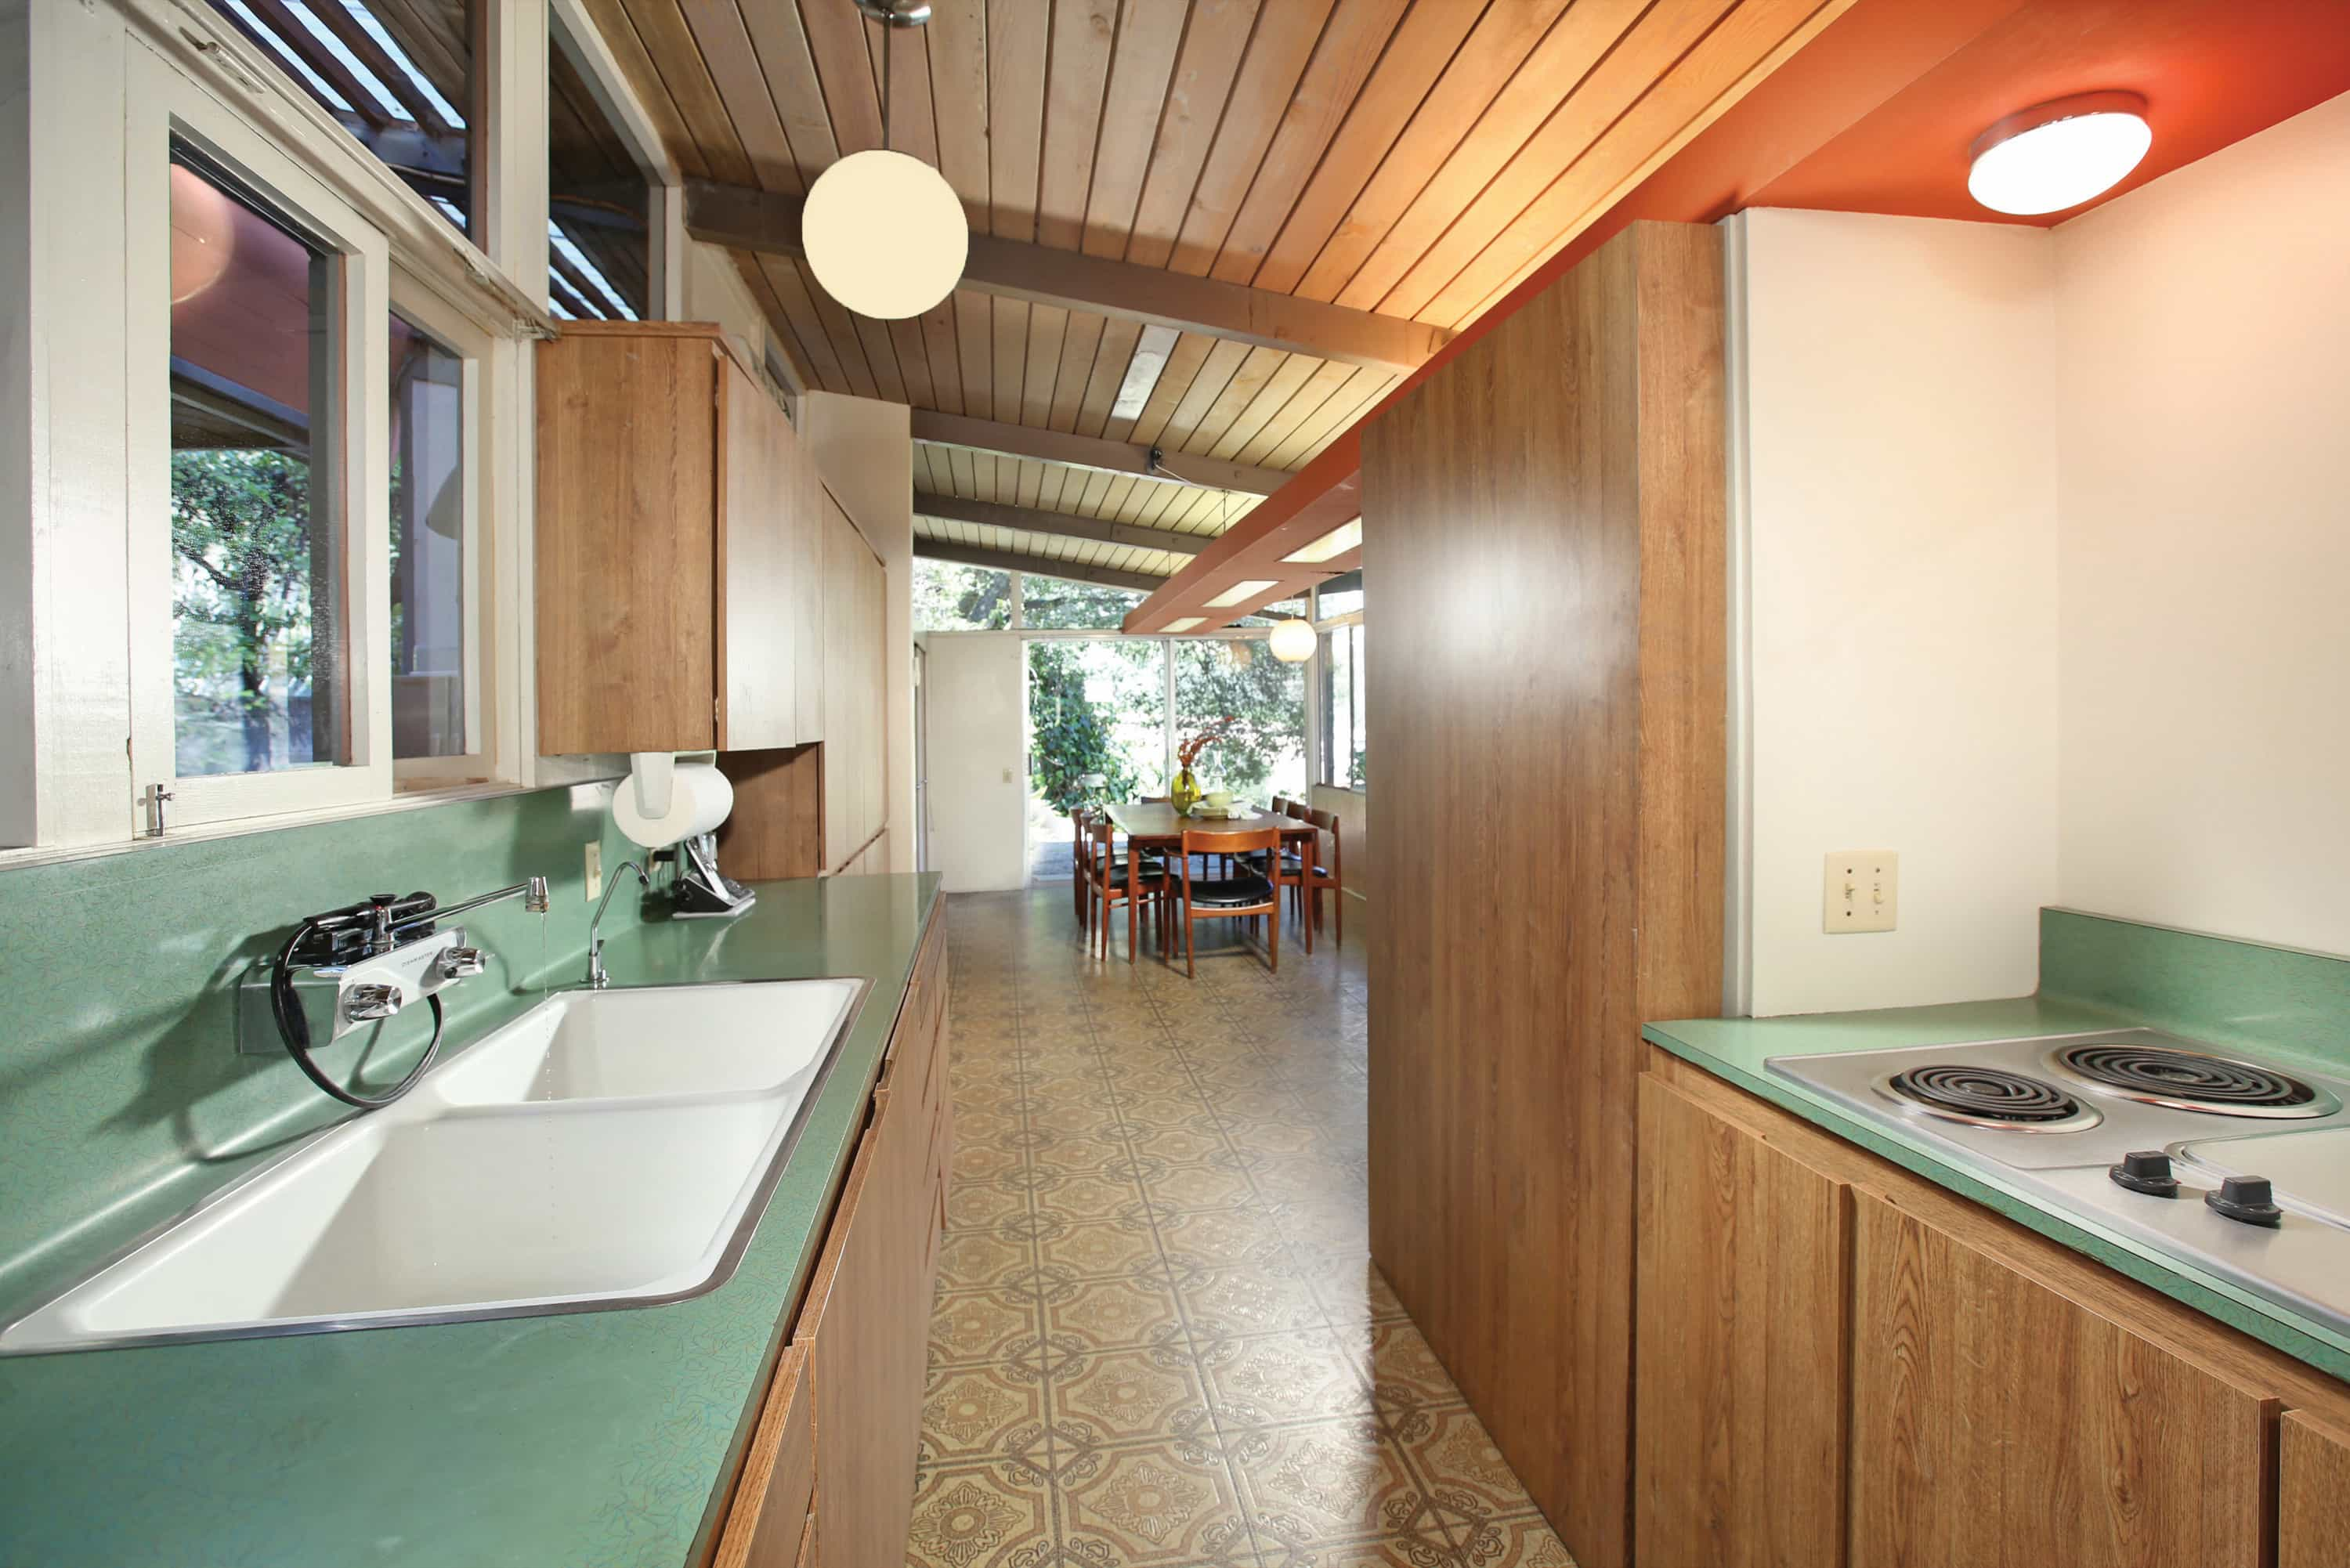 Kemper Nomland Jr mid-century House in Altadena - kitchen